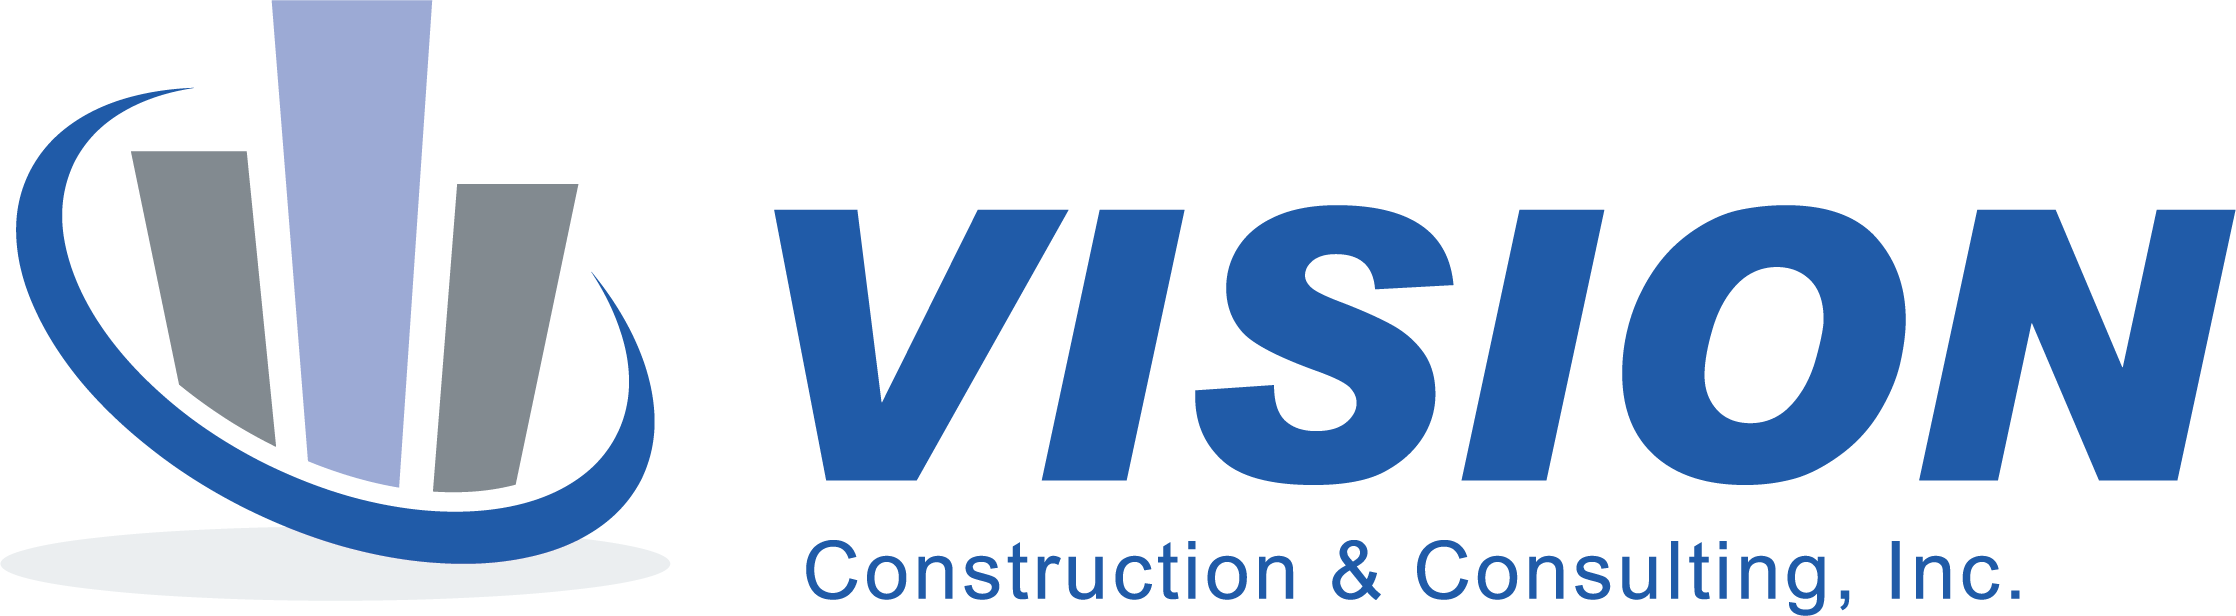 Vision Construction & Consulting